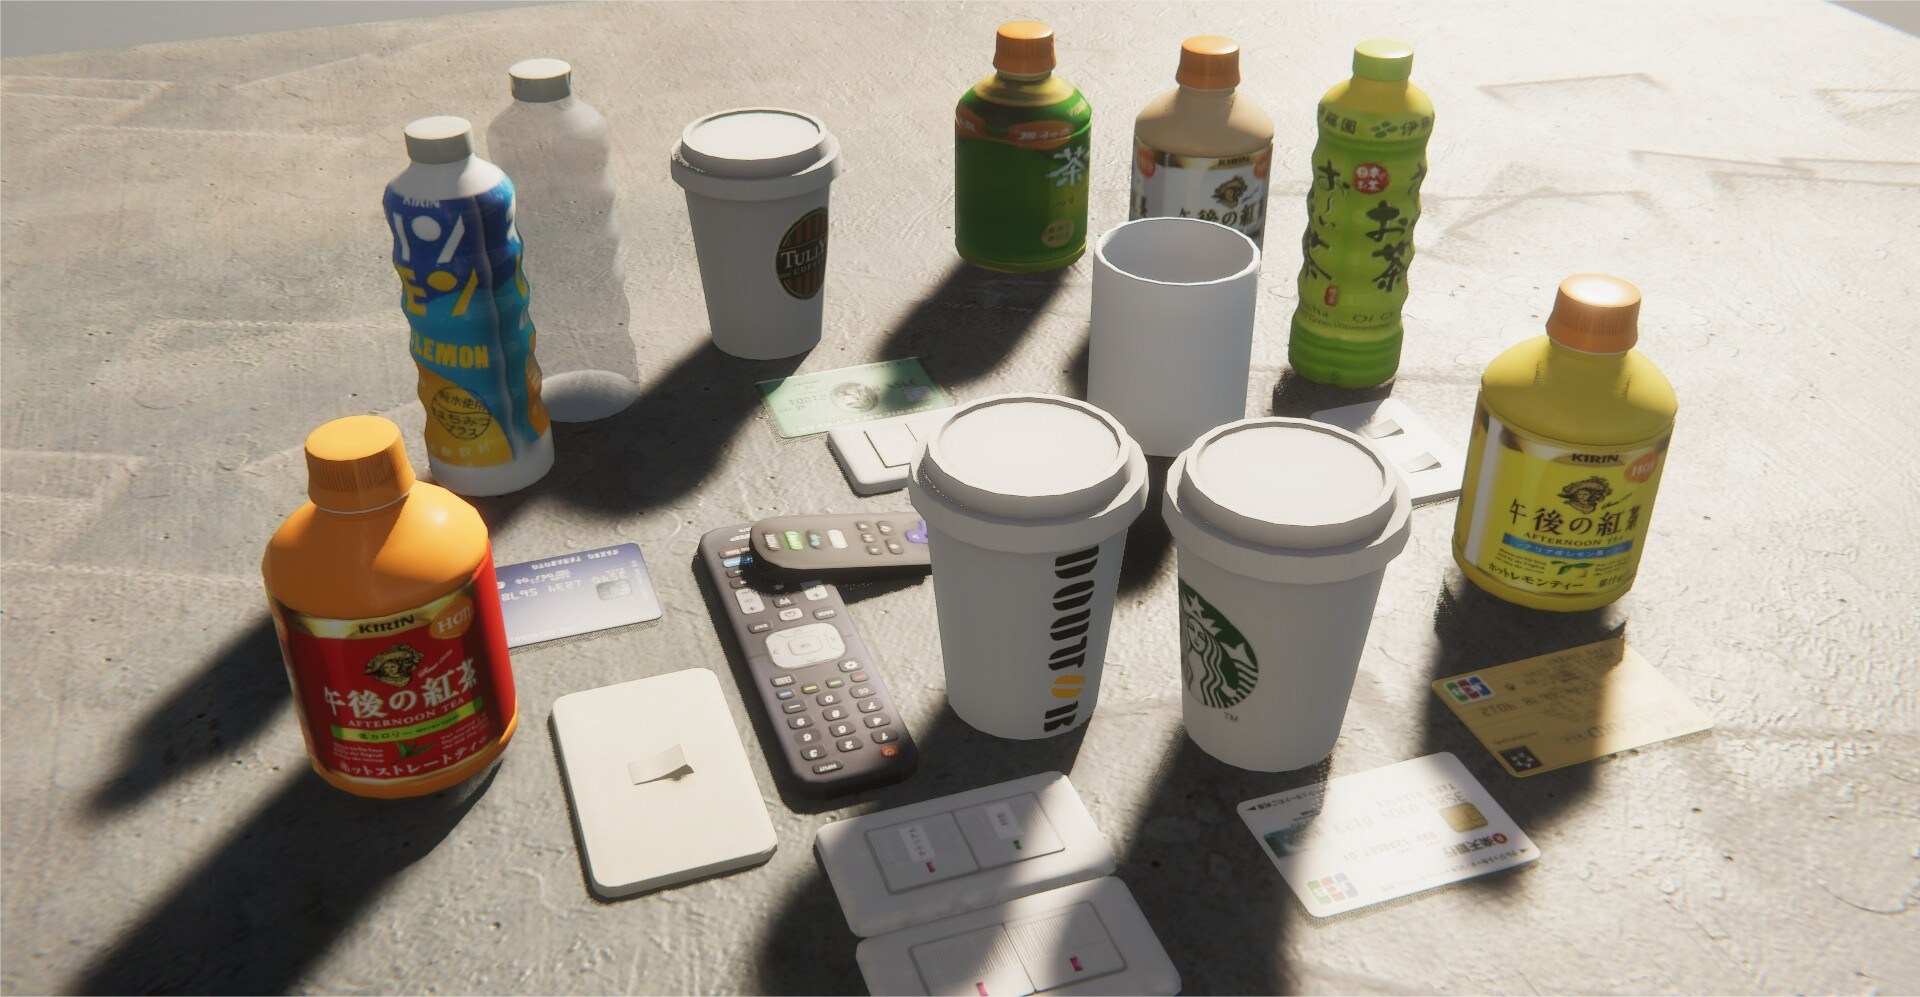 Trap objects: coffee cups, TV Remotes, ID Cards, Water Bottles, Drink Bottles